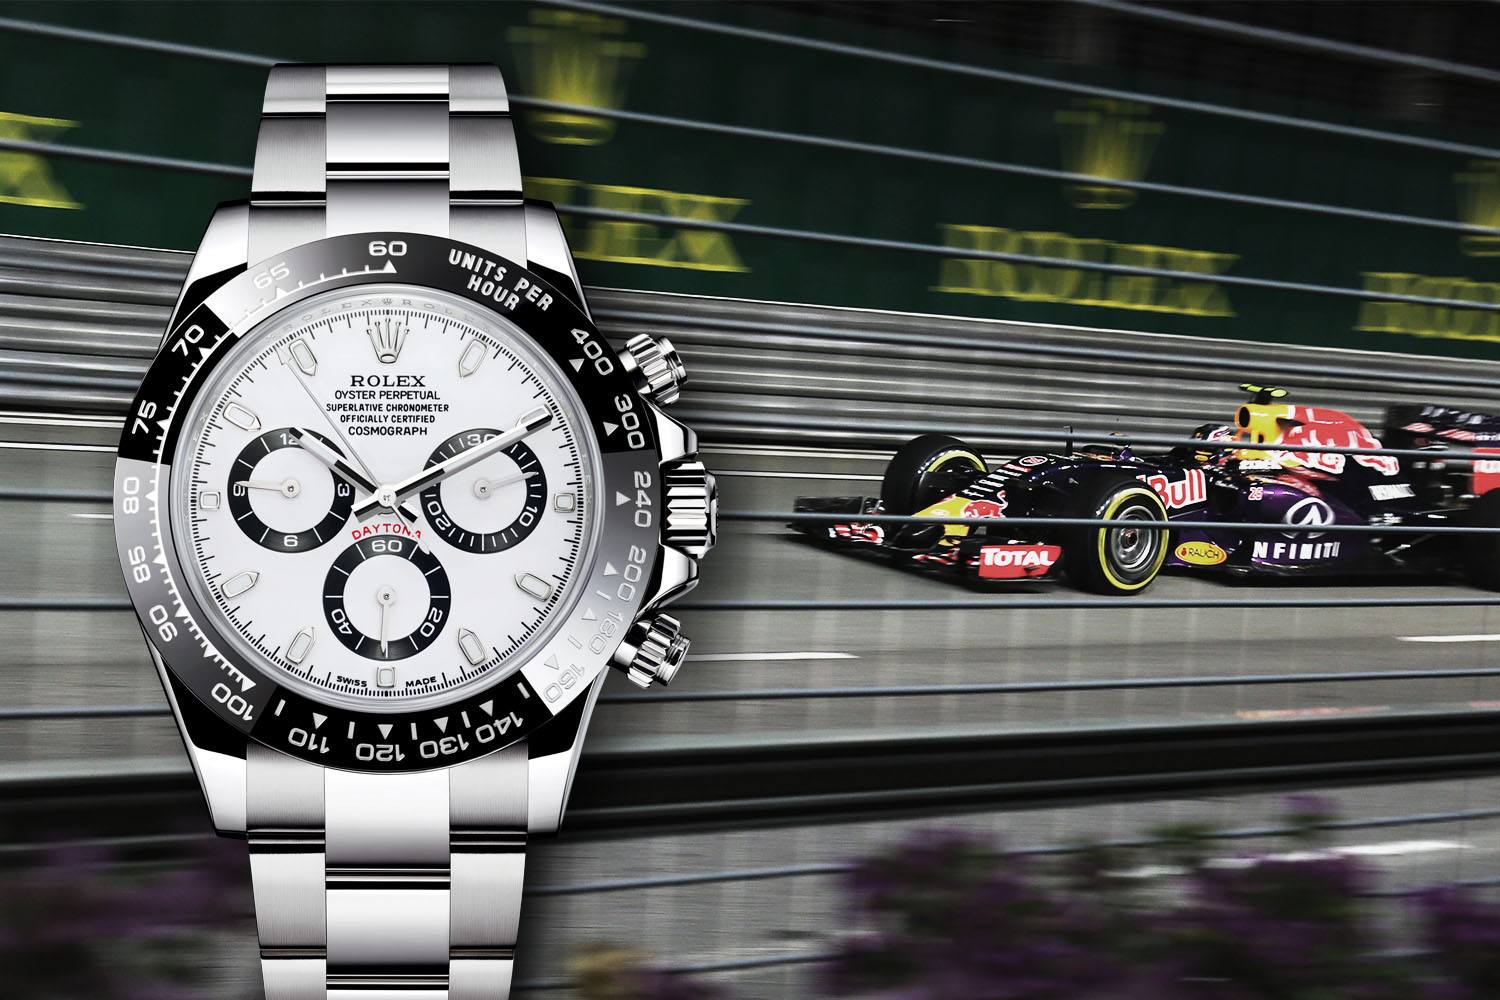 Watches and Formula 1 - Rolex official Timekeeper